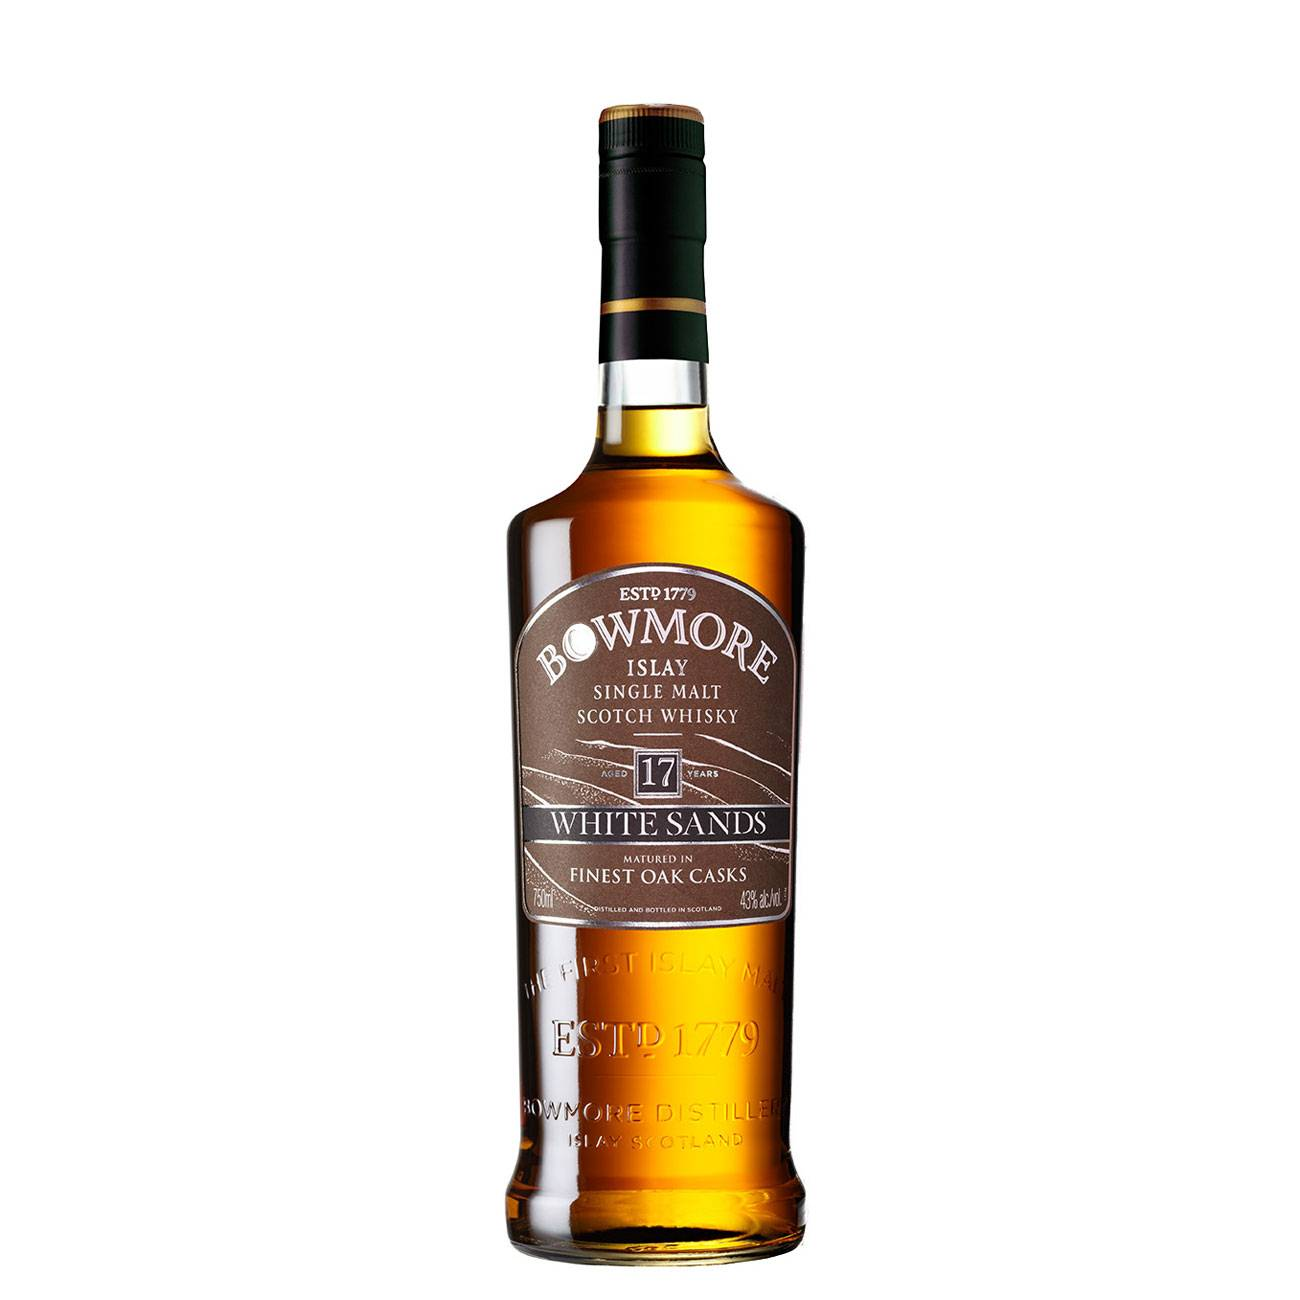 Whisky scotian, WHITE SANDS 17 YEAR OLD 700 ML, Bowmore